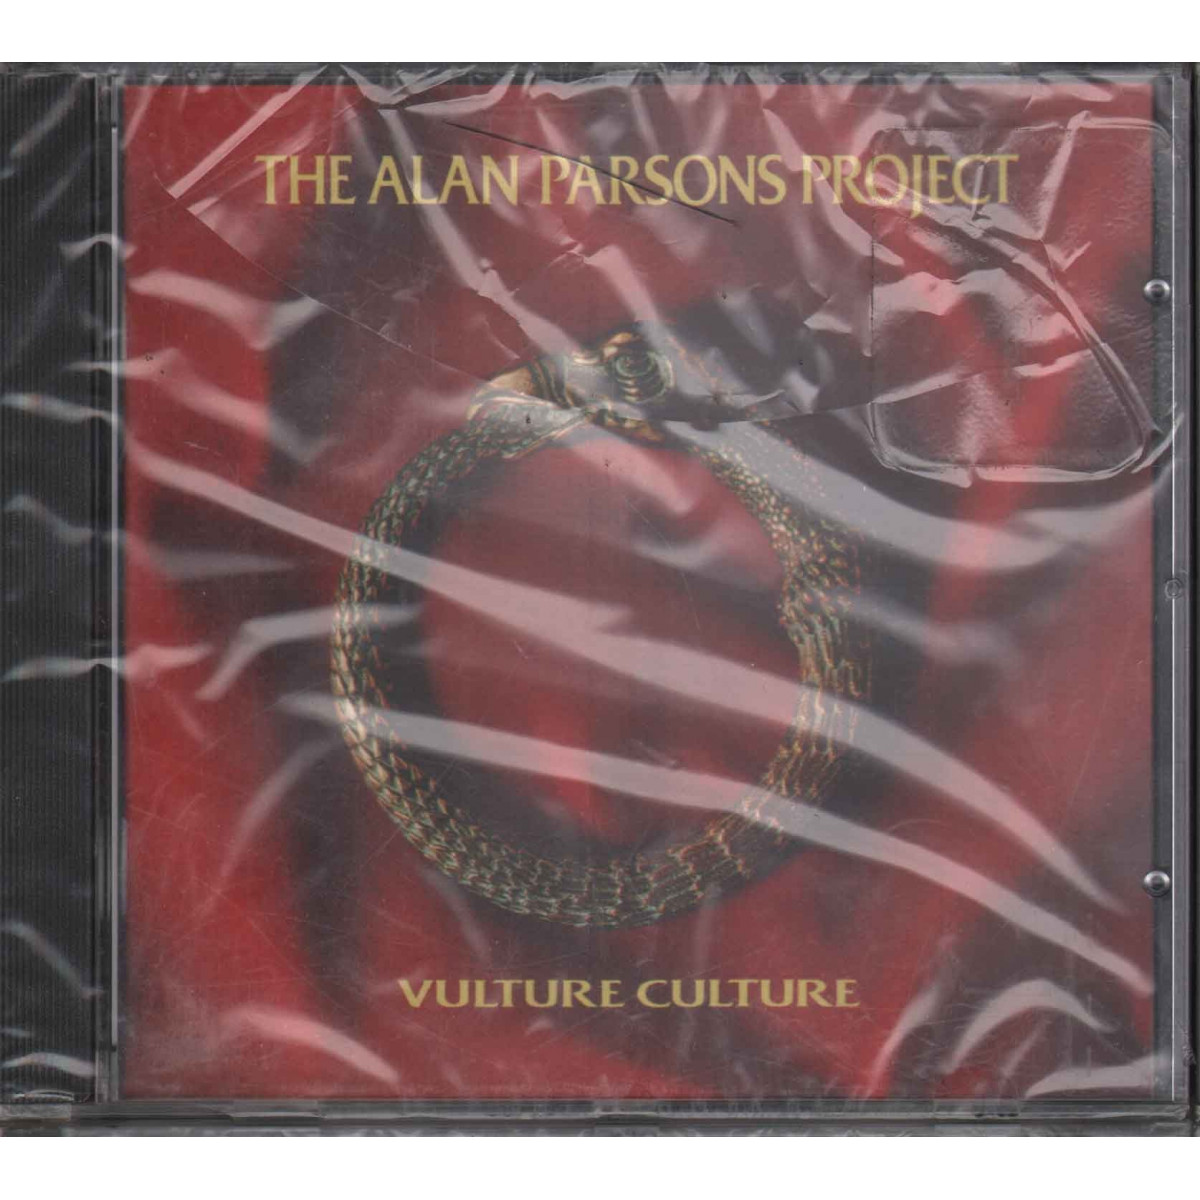 The Alan Parsons Project ‎CD Vulture Culture / Arista ‎258 884 Sigillato